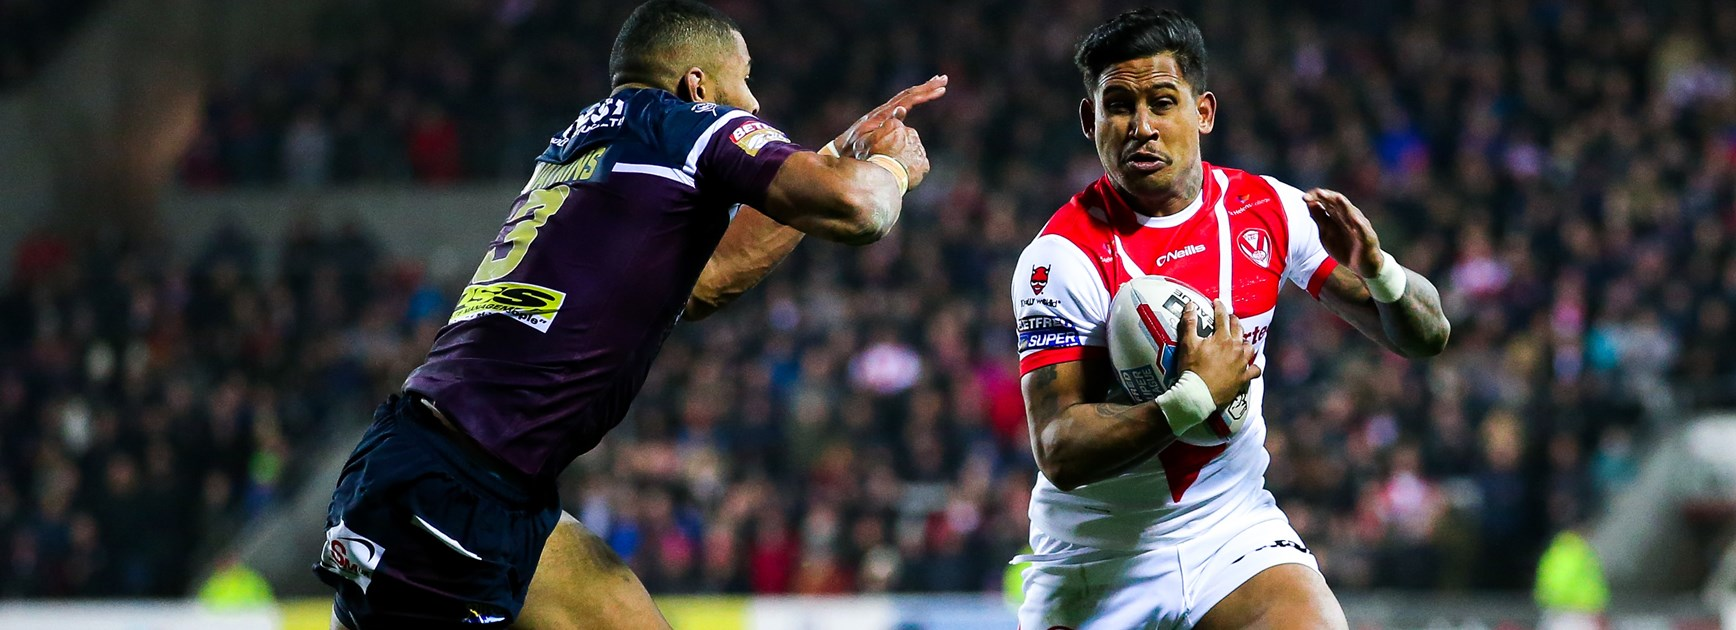 Ben Barba playing for St Helens.